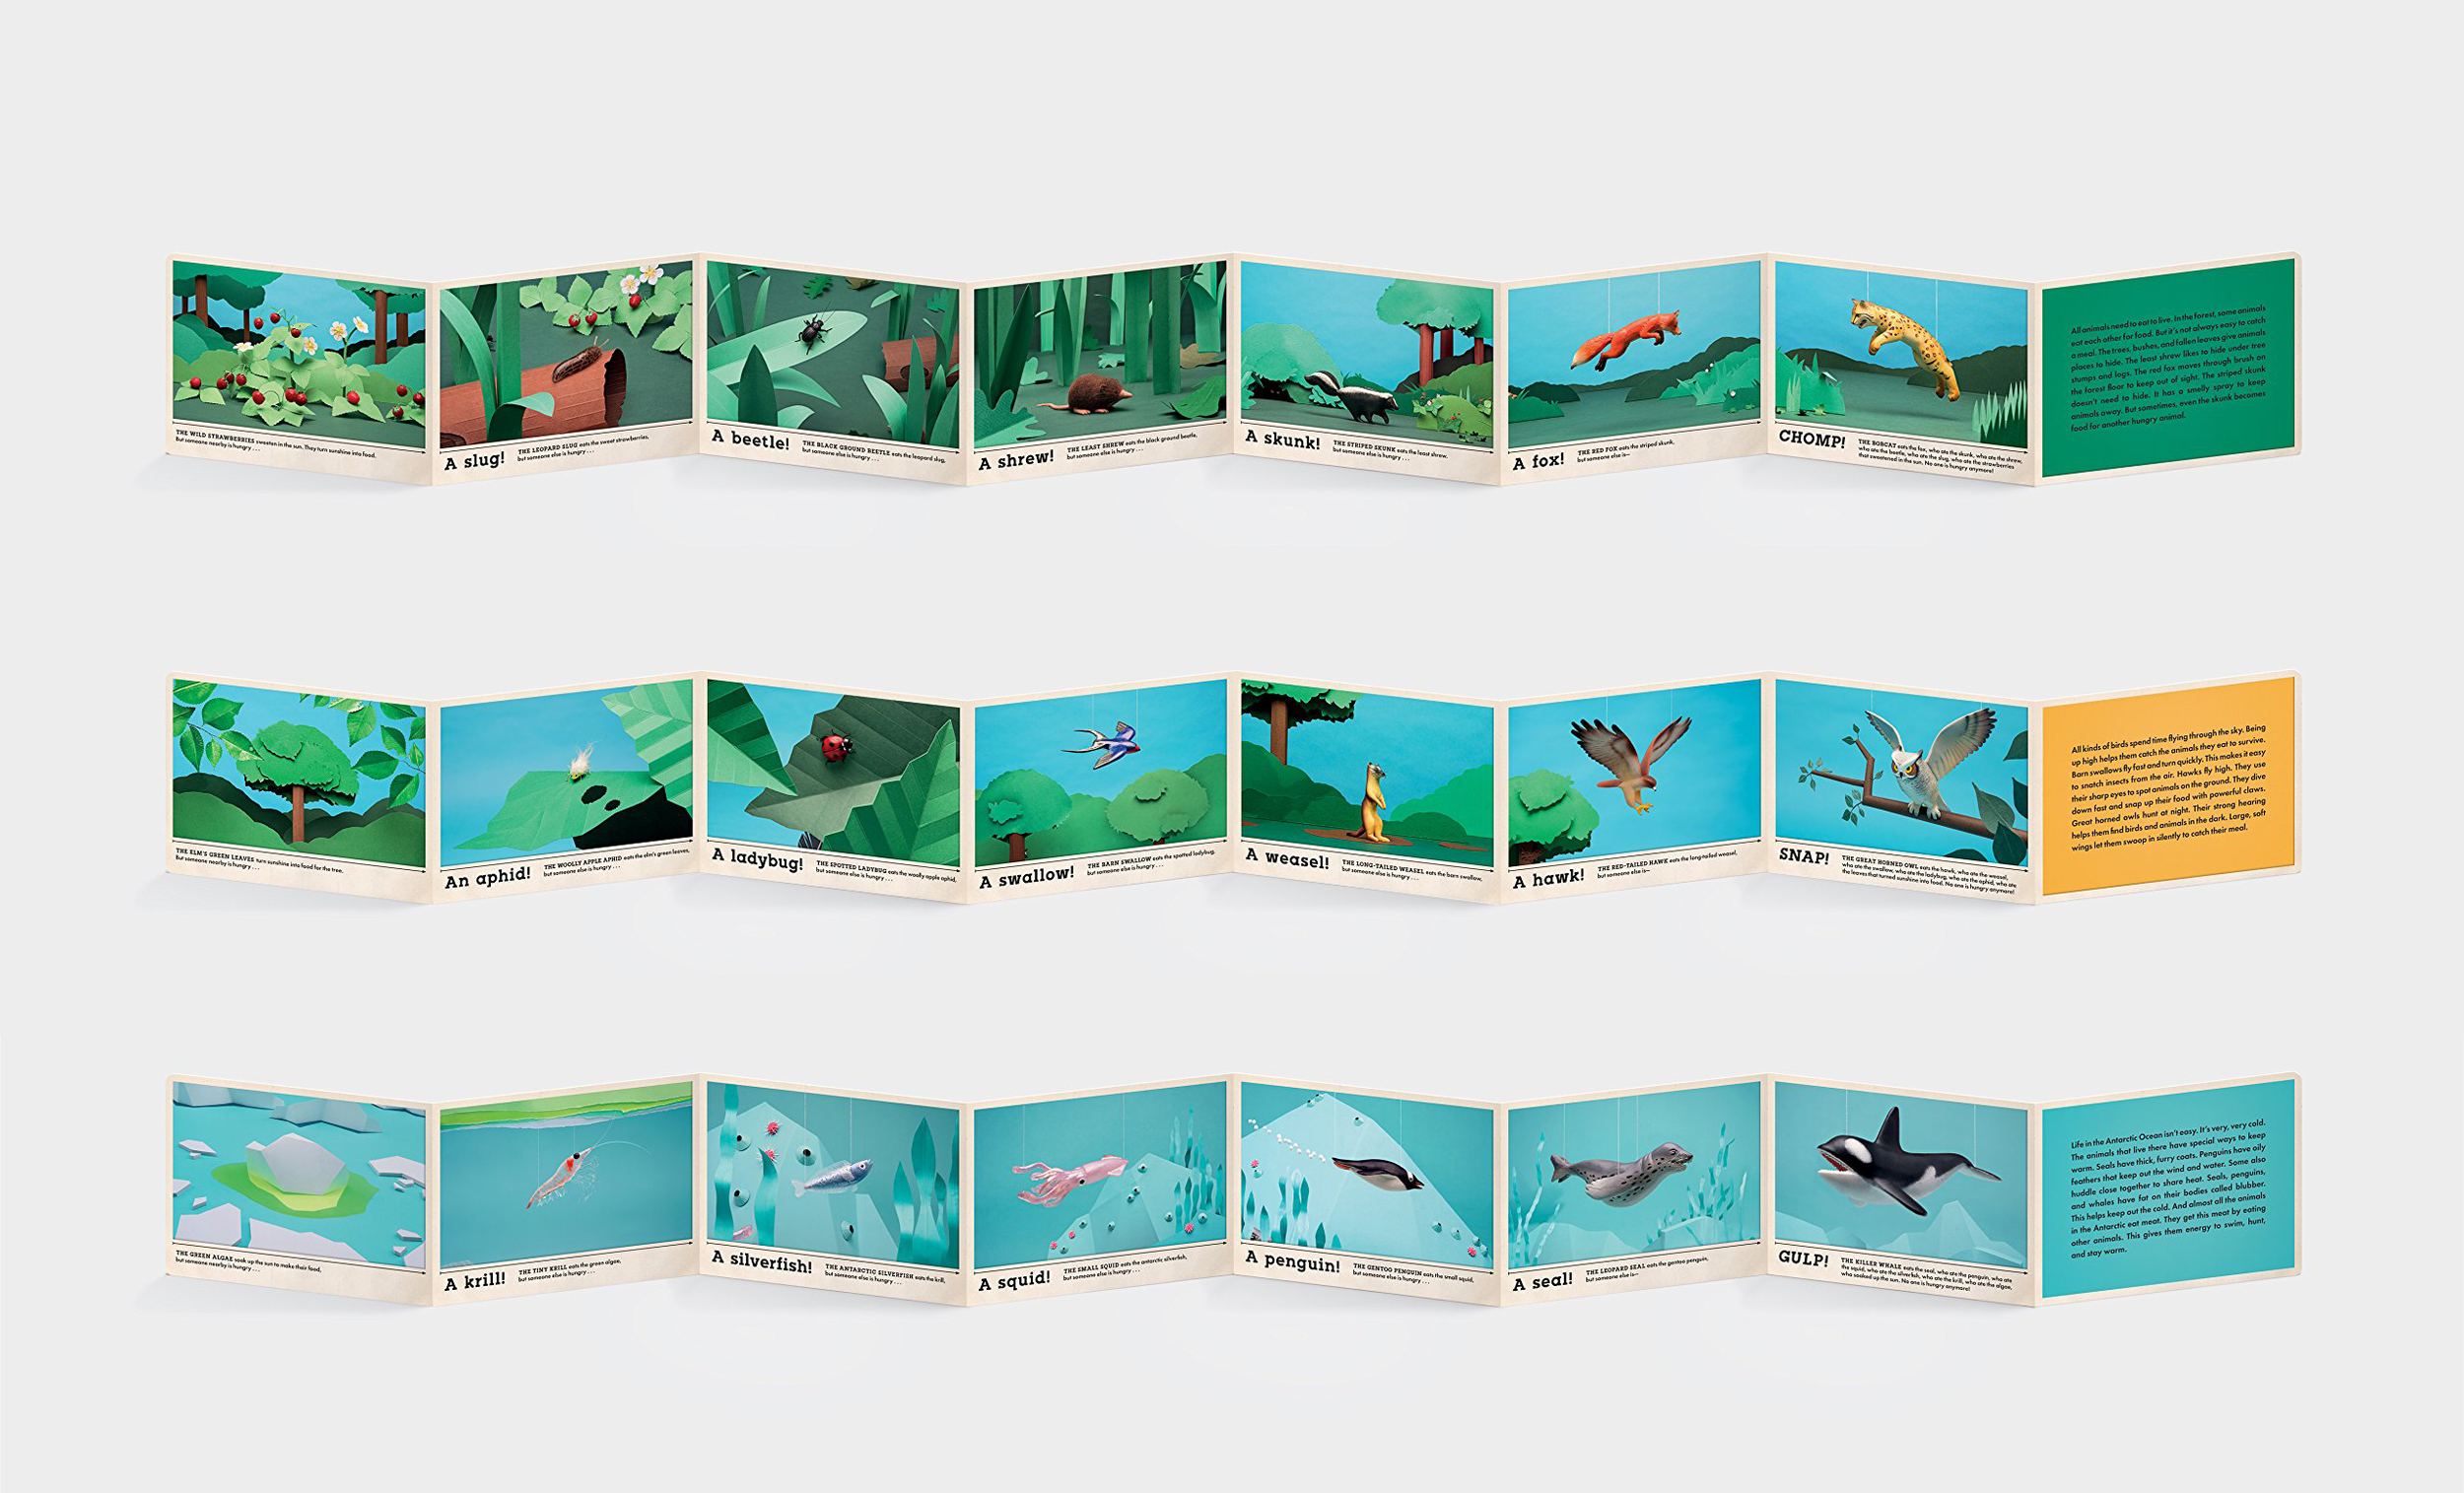 THE ACCORDION-STYLE-FOLDOUT BOOKS, UNFOLDED